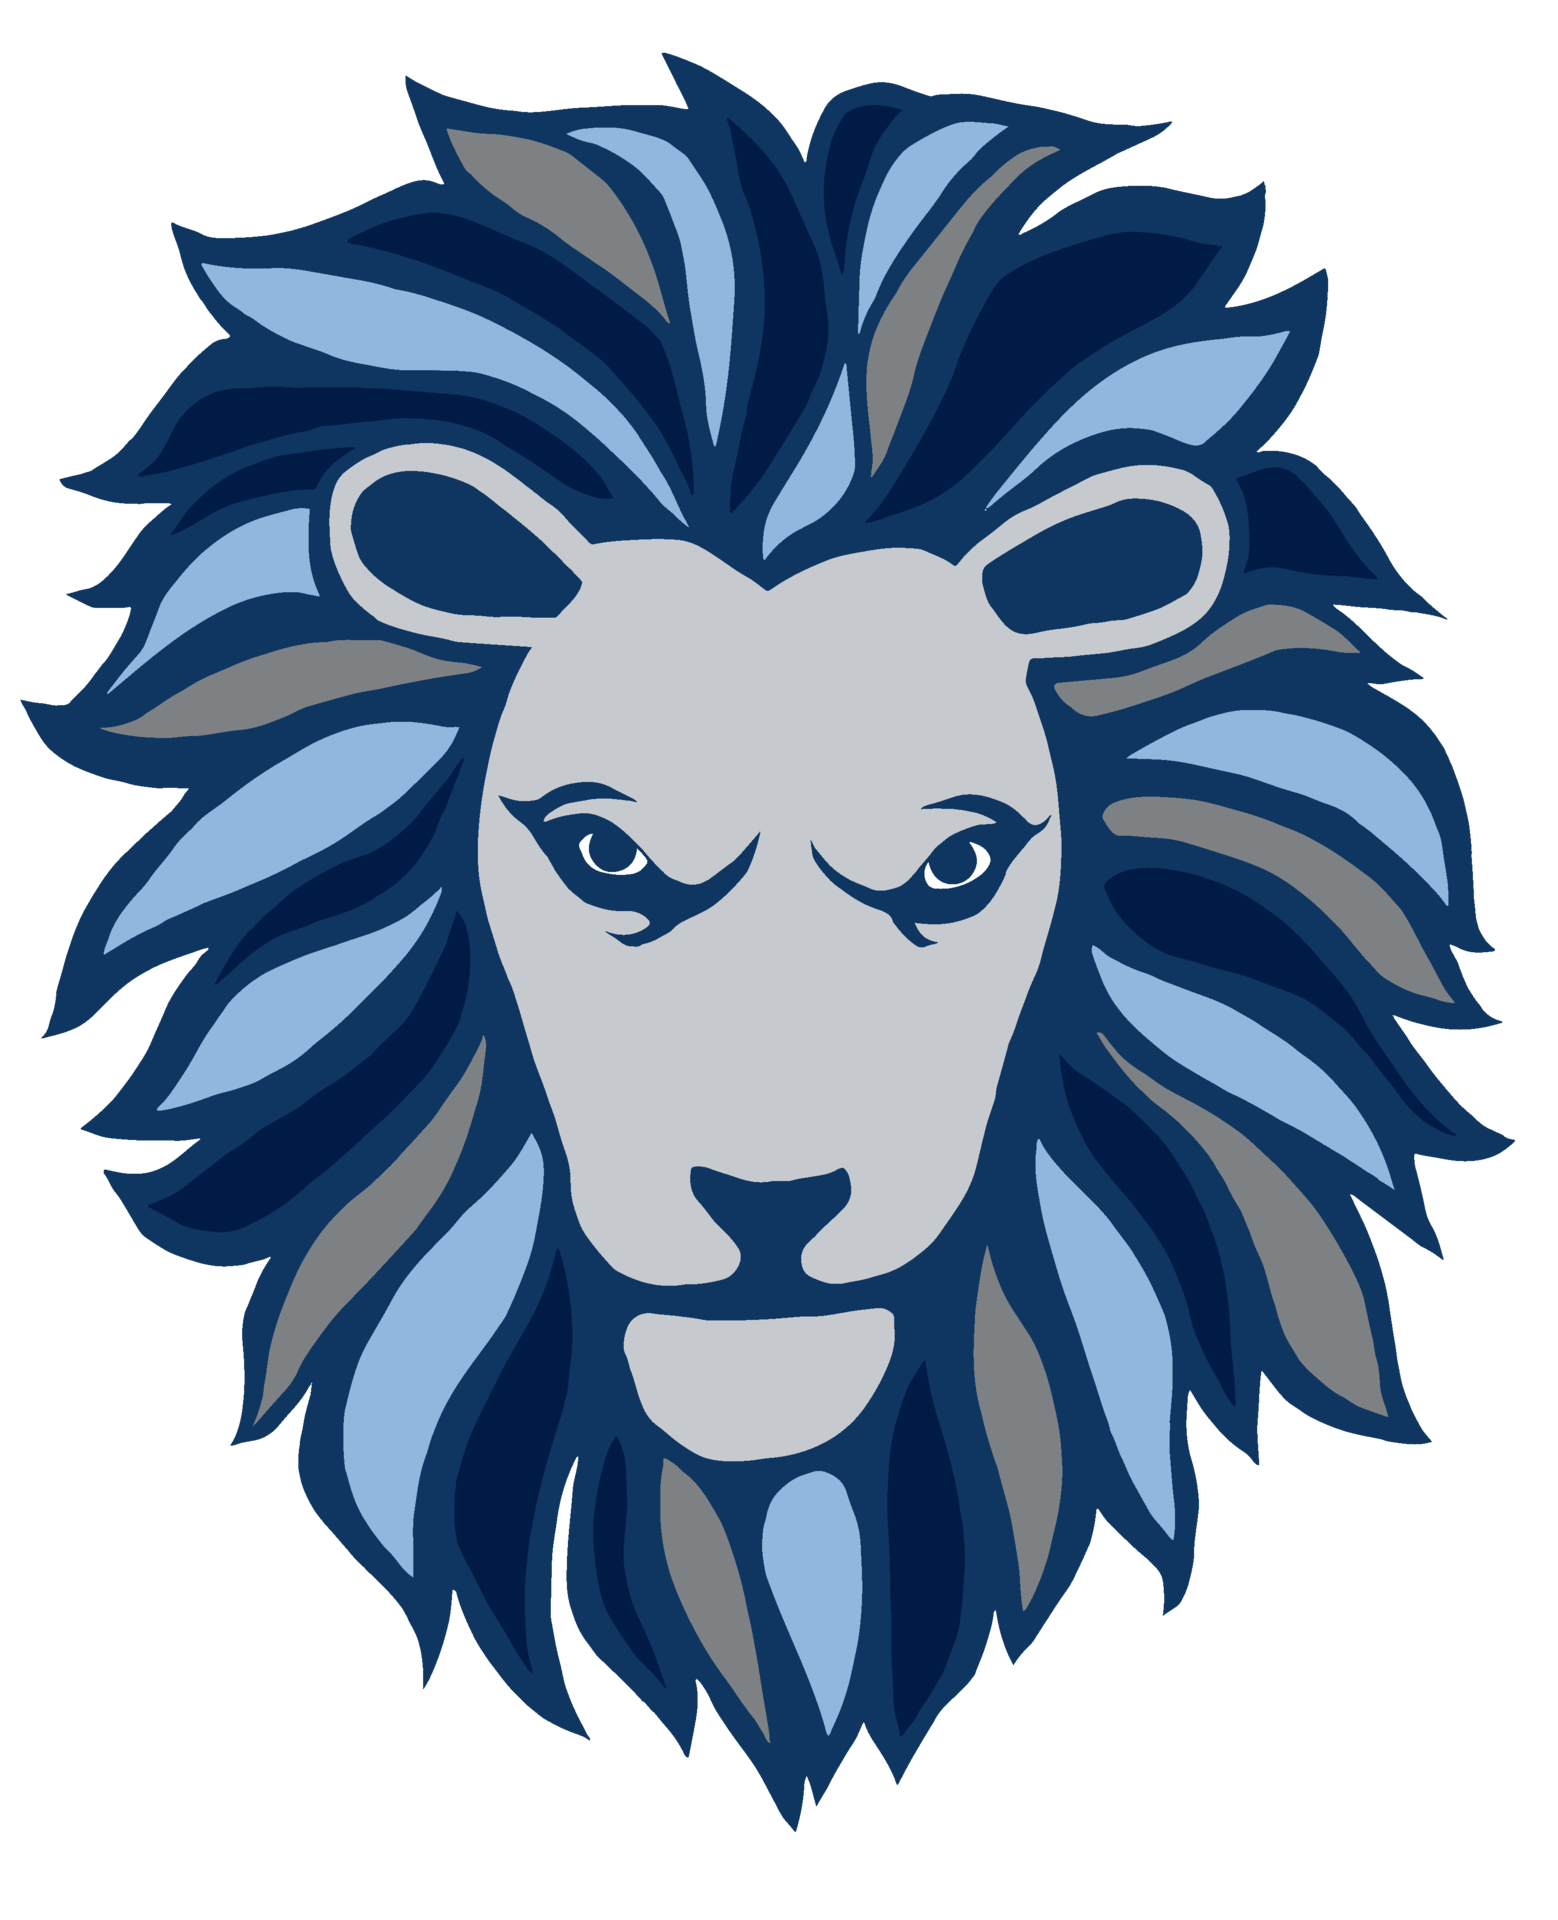 image of DeLeon Lion